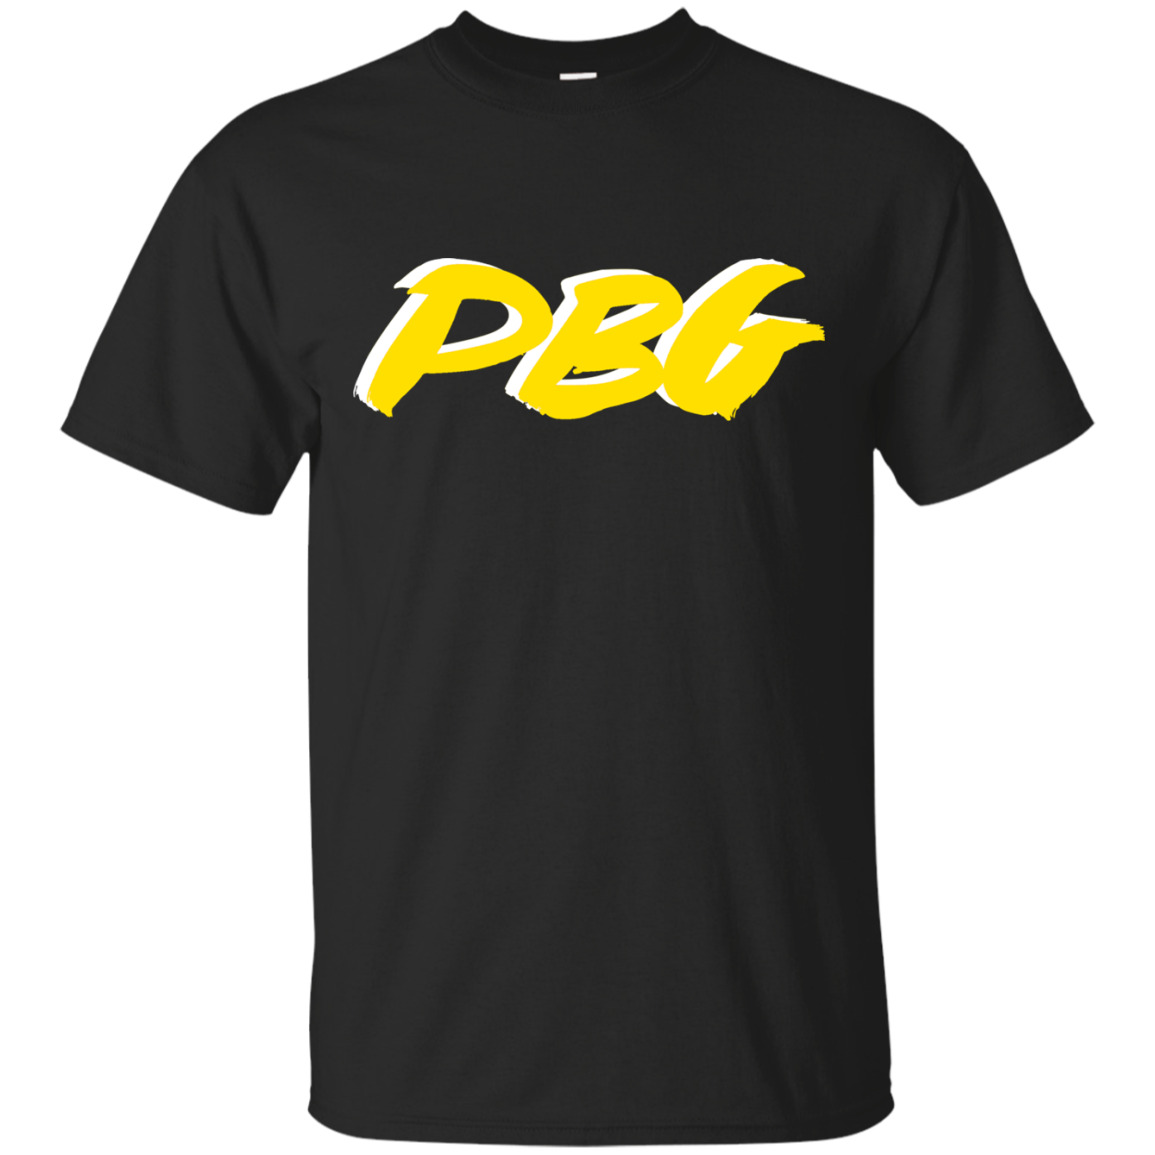 PBG PAINT :Ultra Cotton T-Shirt